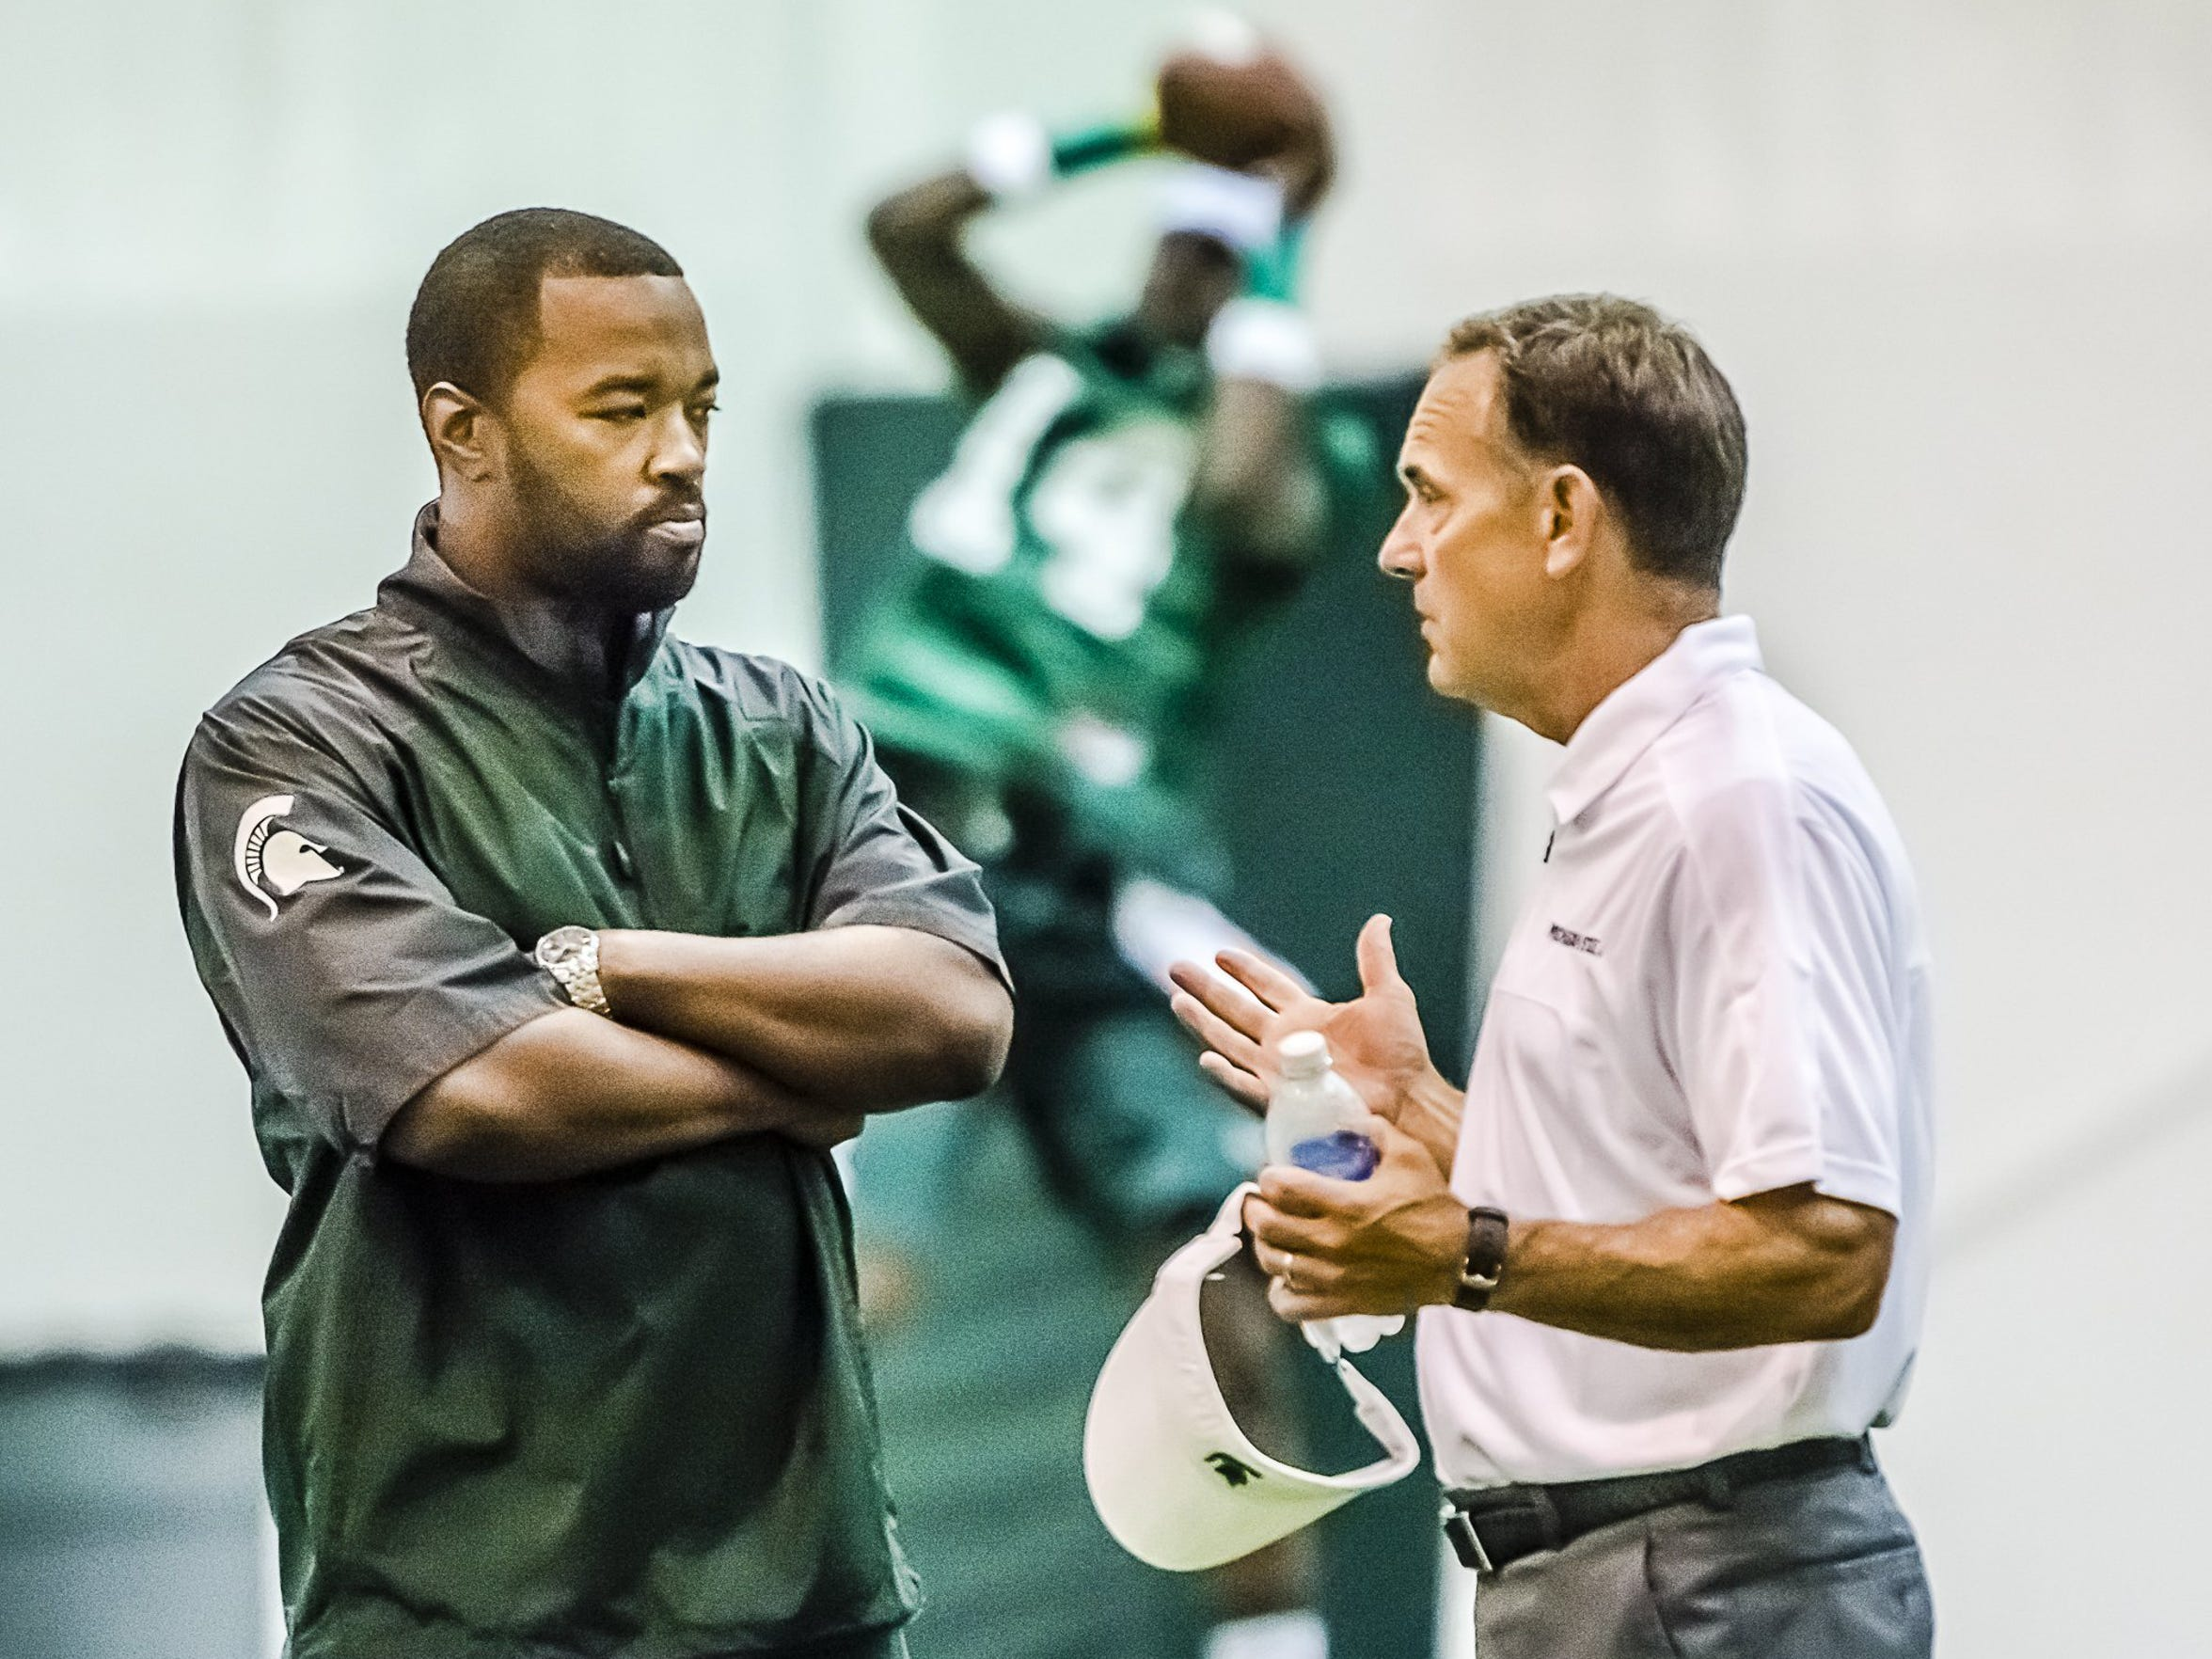 Coach Mark Dantonio, right, speaks with Curtis Blackwell,